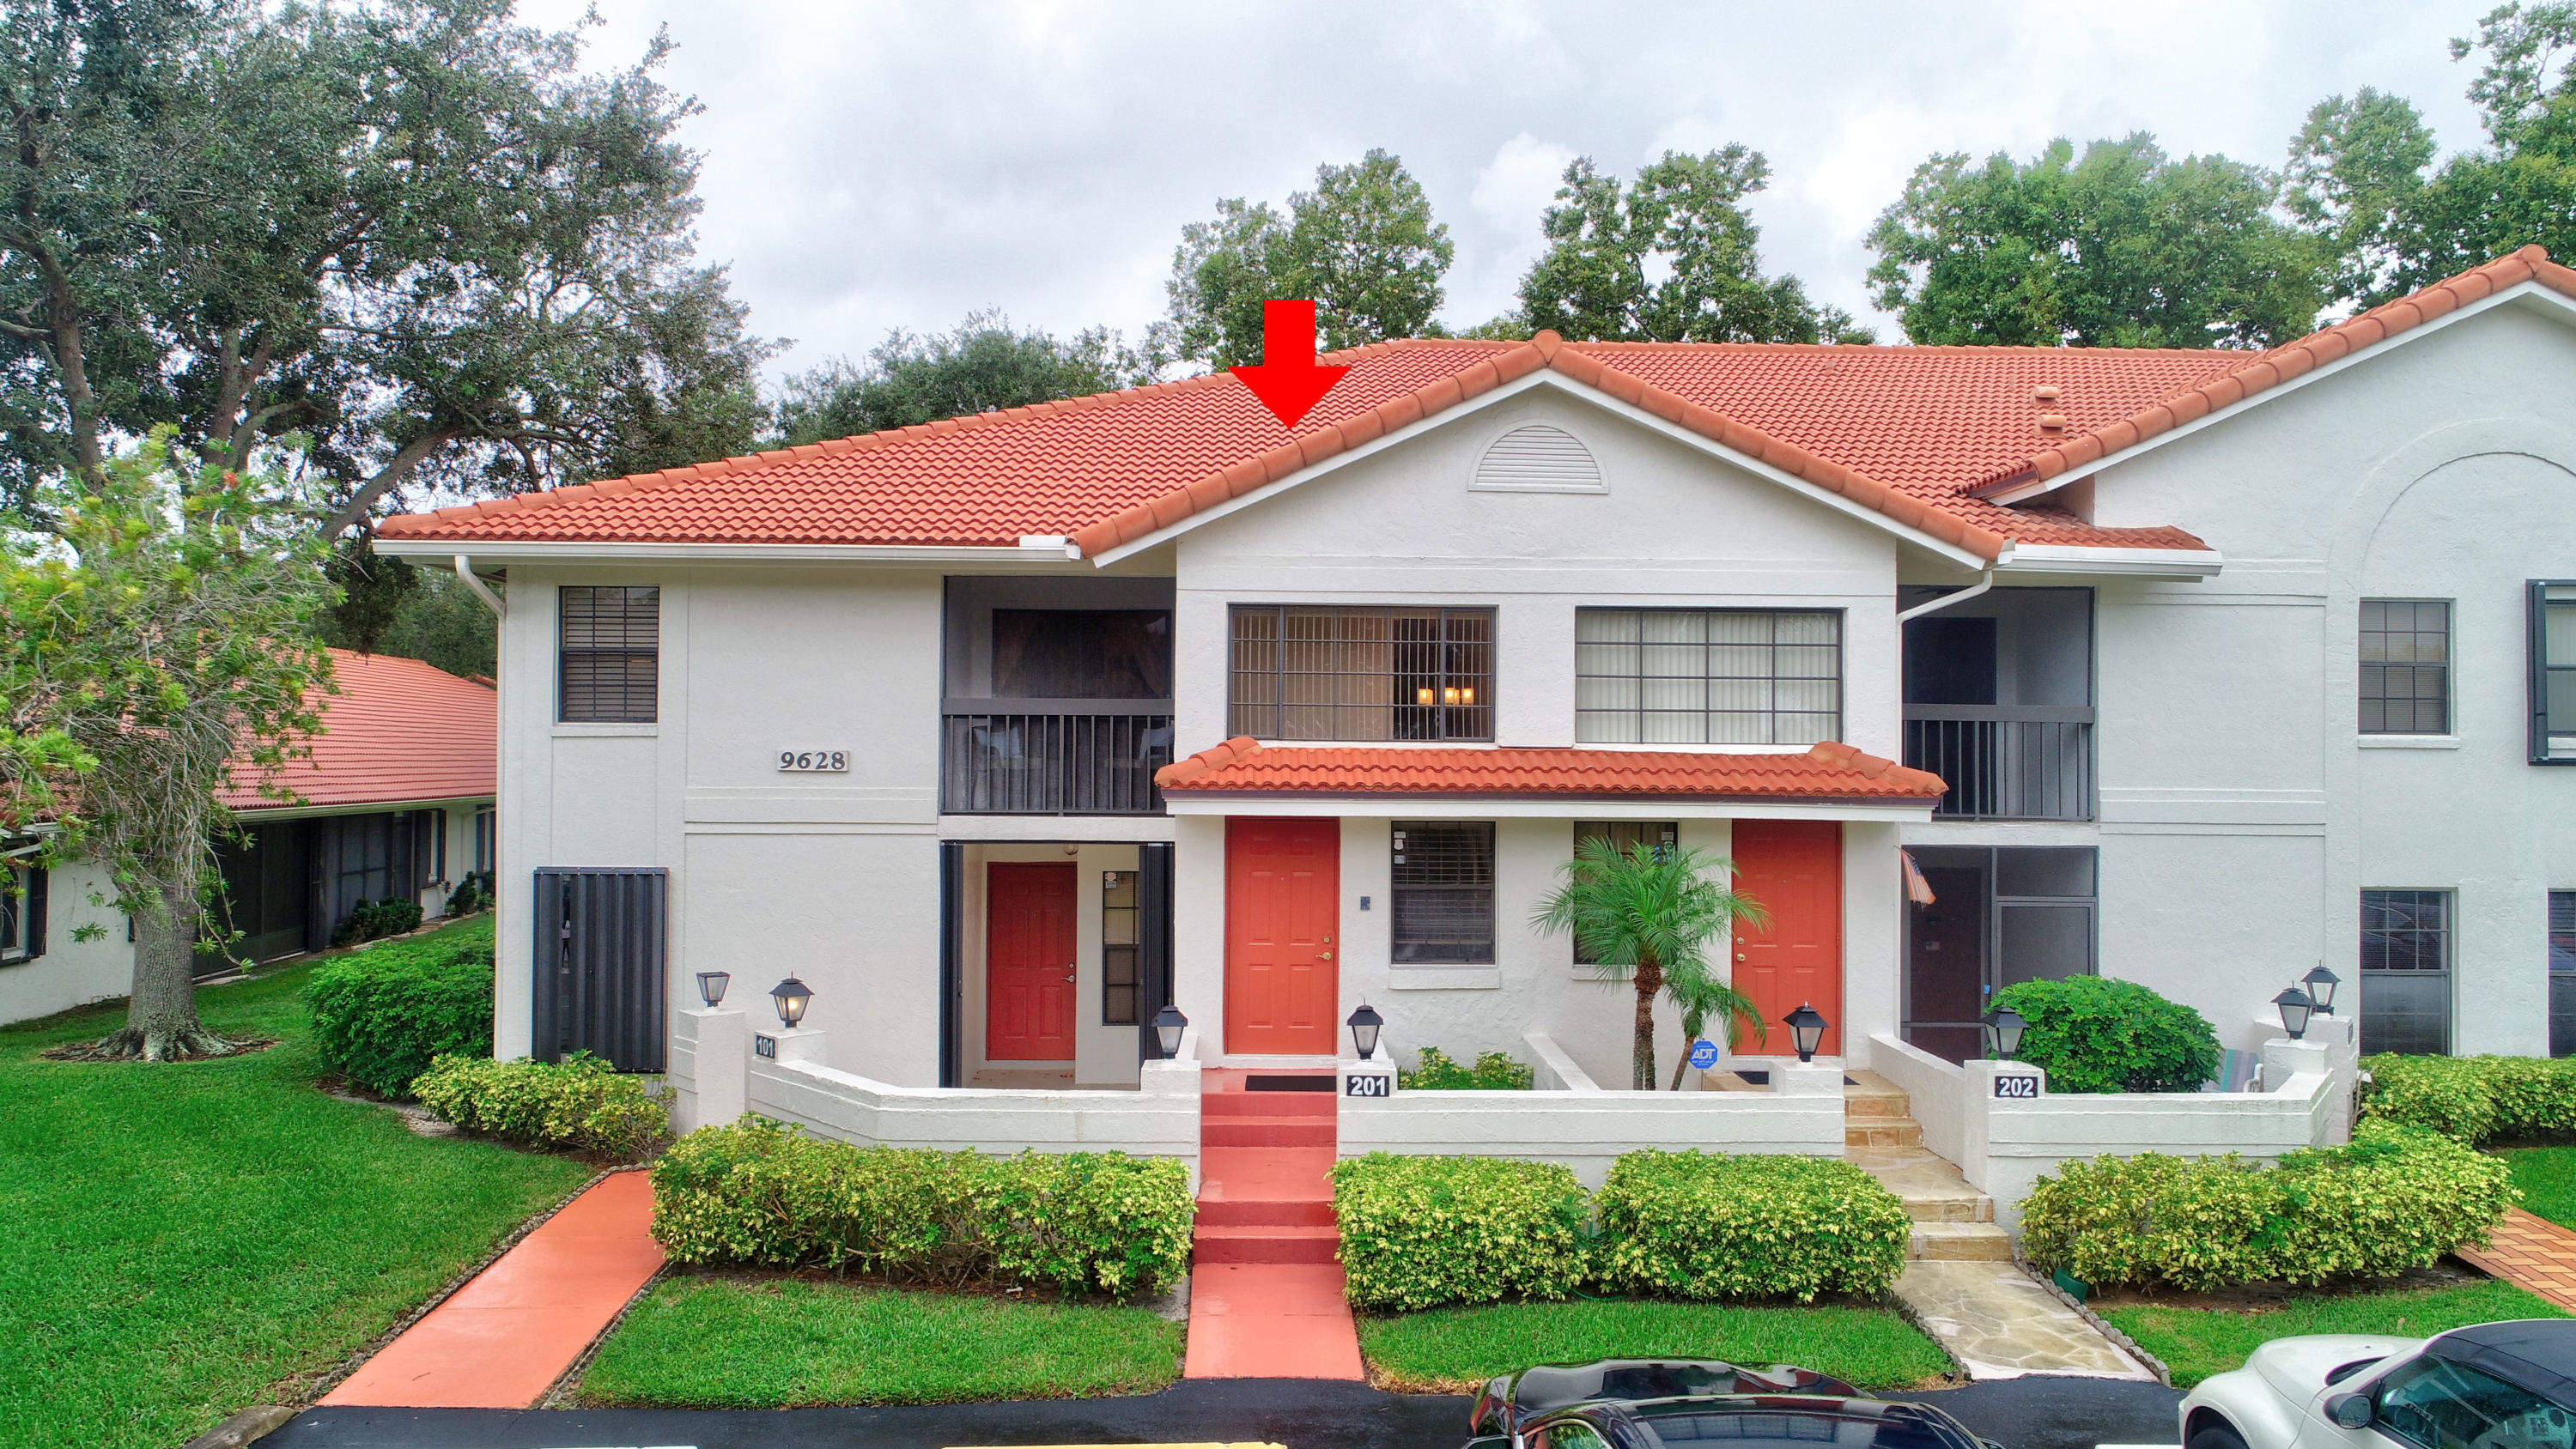 9628 Pavarotti Terrace 201 Boynton Beach, FL 33437 small photo 1